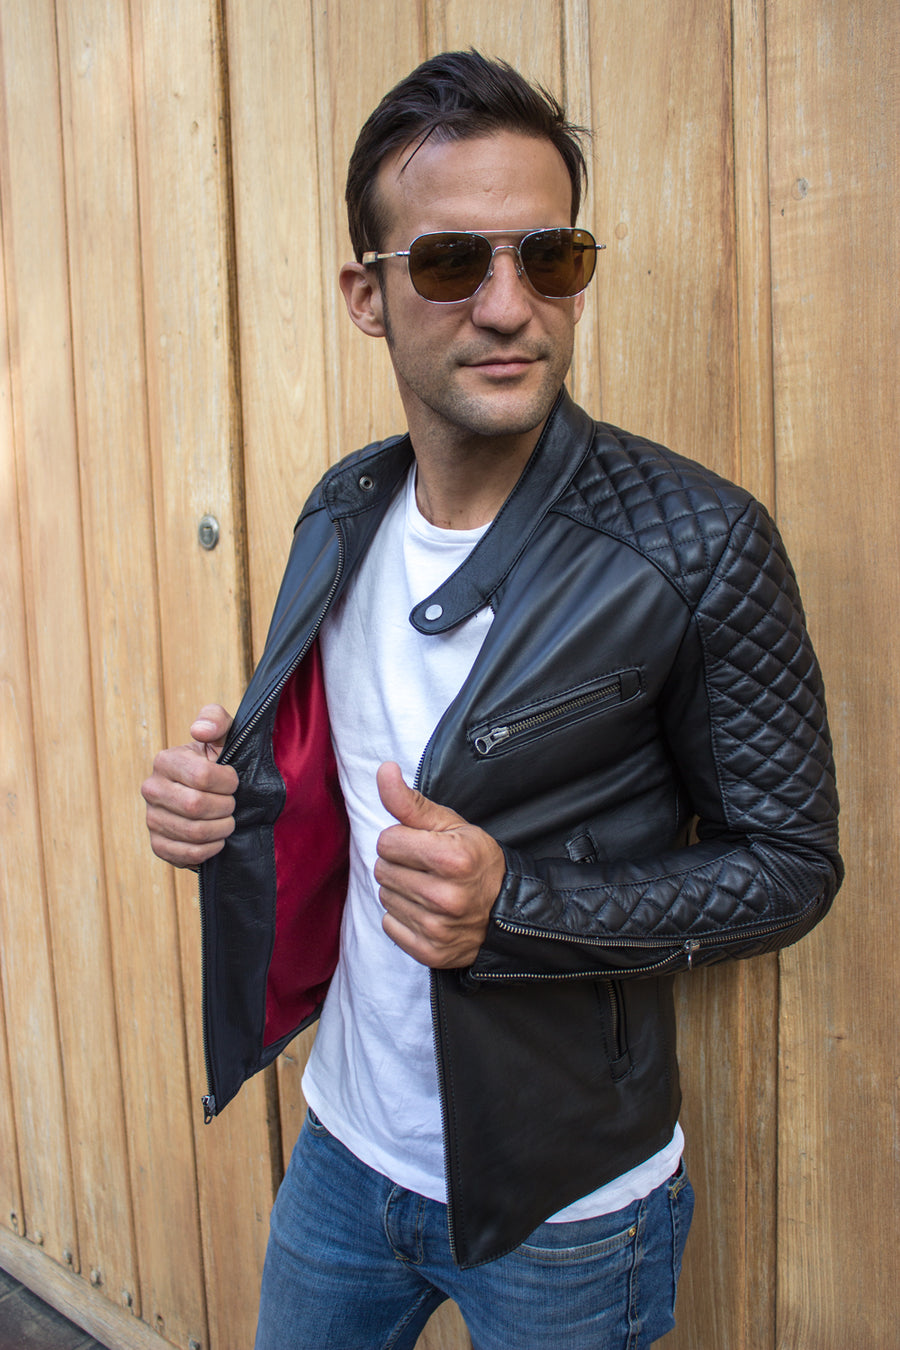 R79 QS Leather Jacket in Black lightweight Calfskin - Quilted, Cafe Racer Style